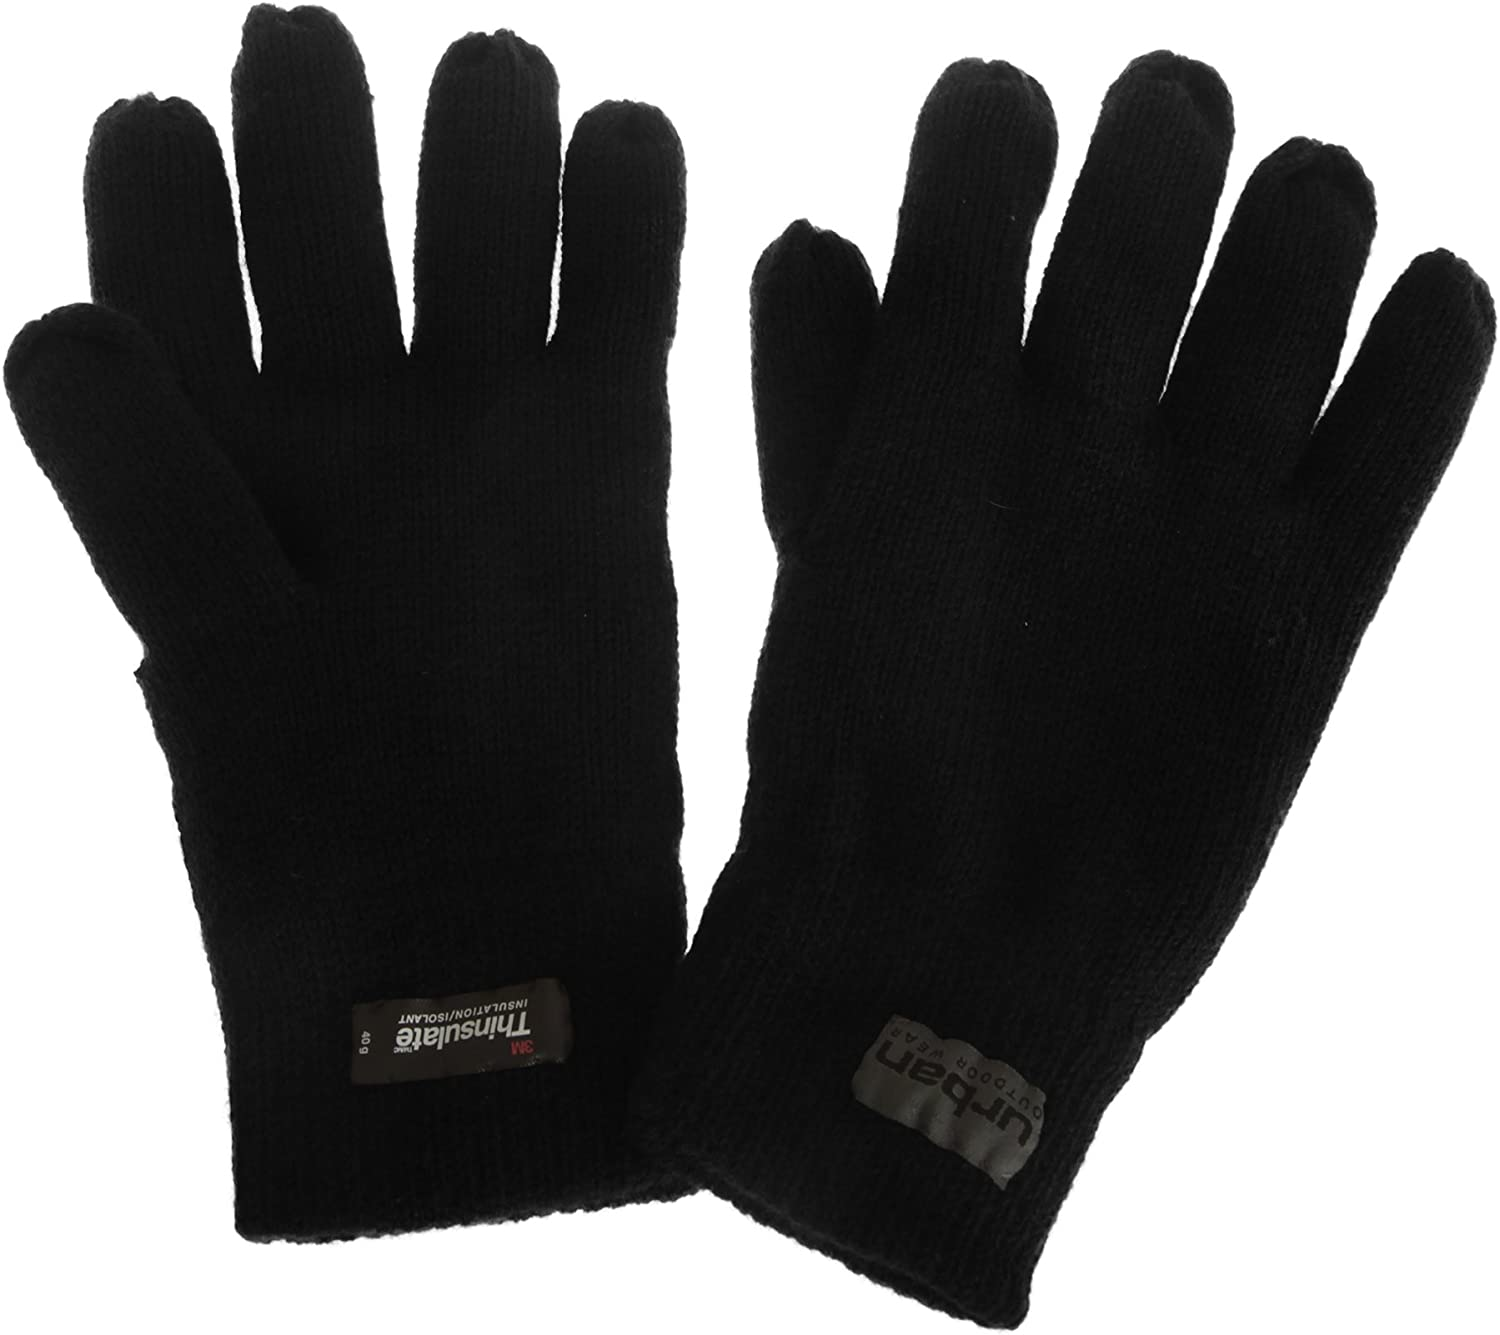 Result Unisex Thinsulate Lined 40g Thermal Challenge the lowest Online limited product price Gloves 3M